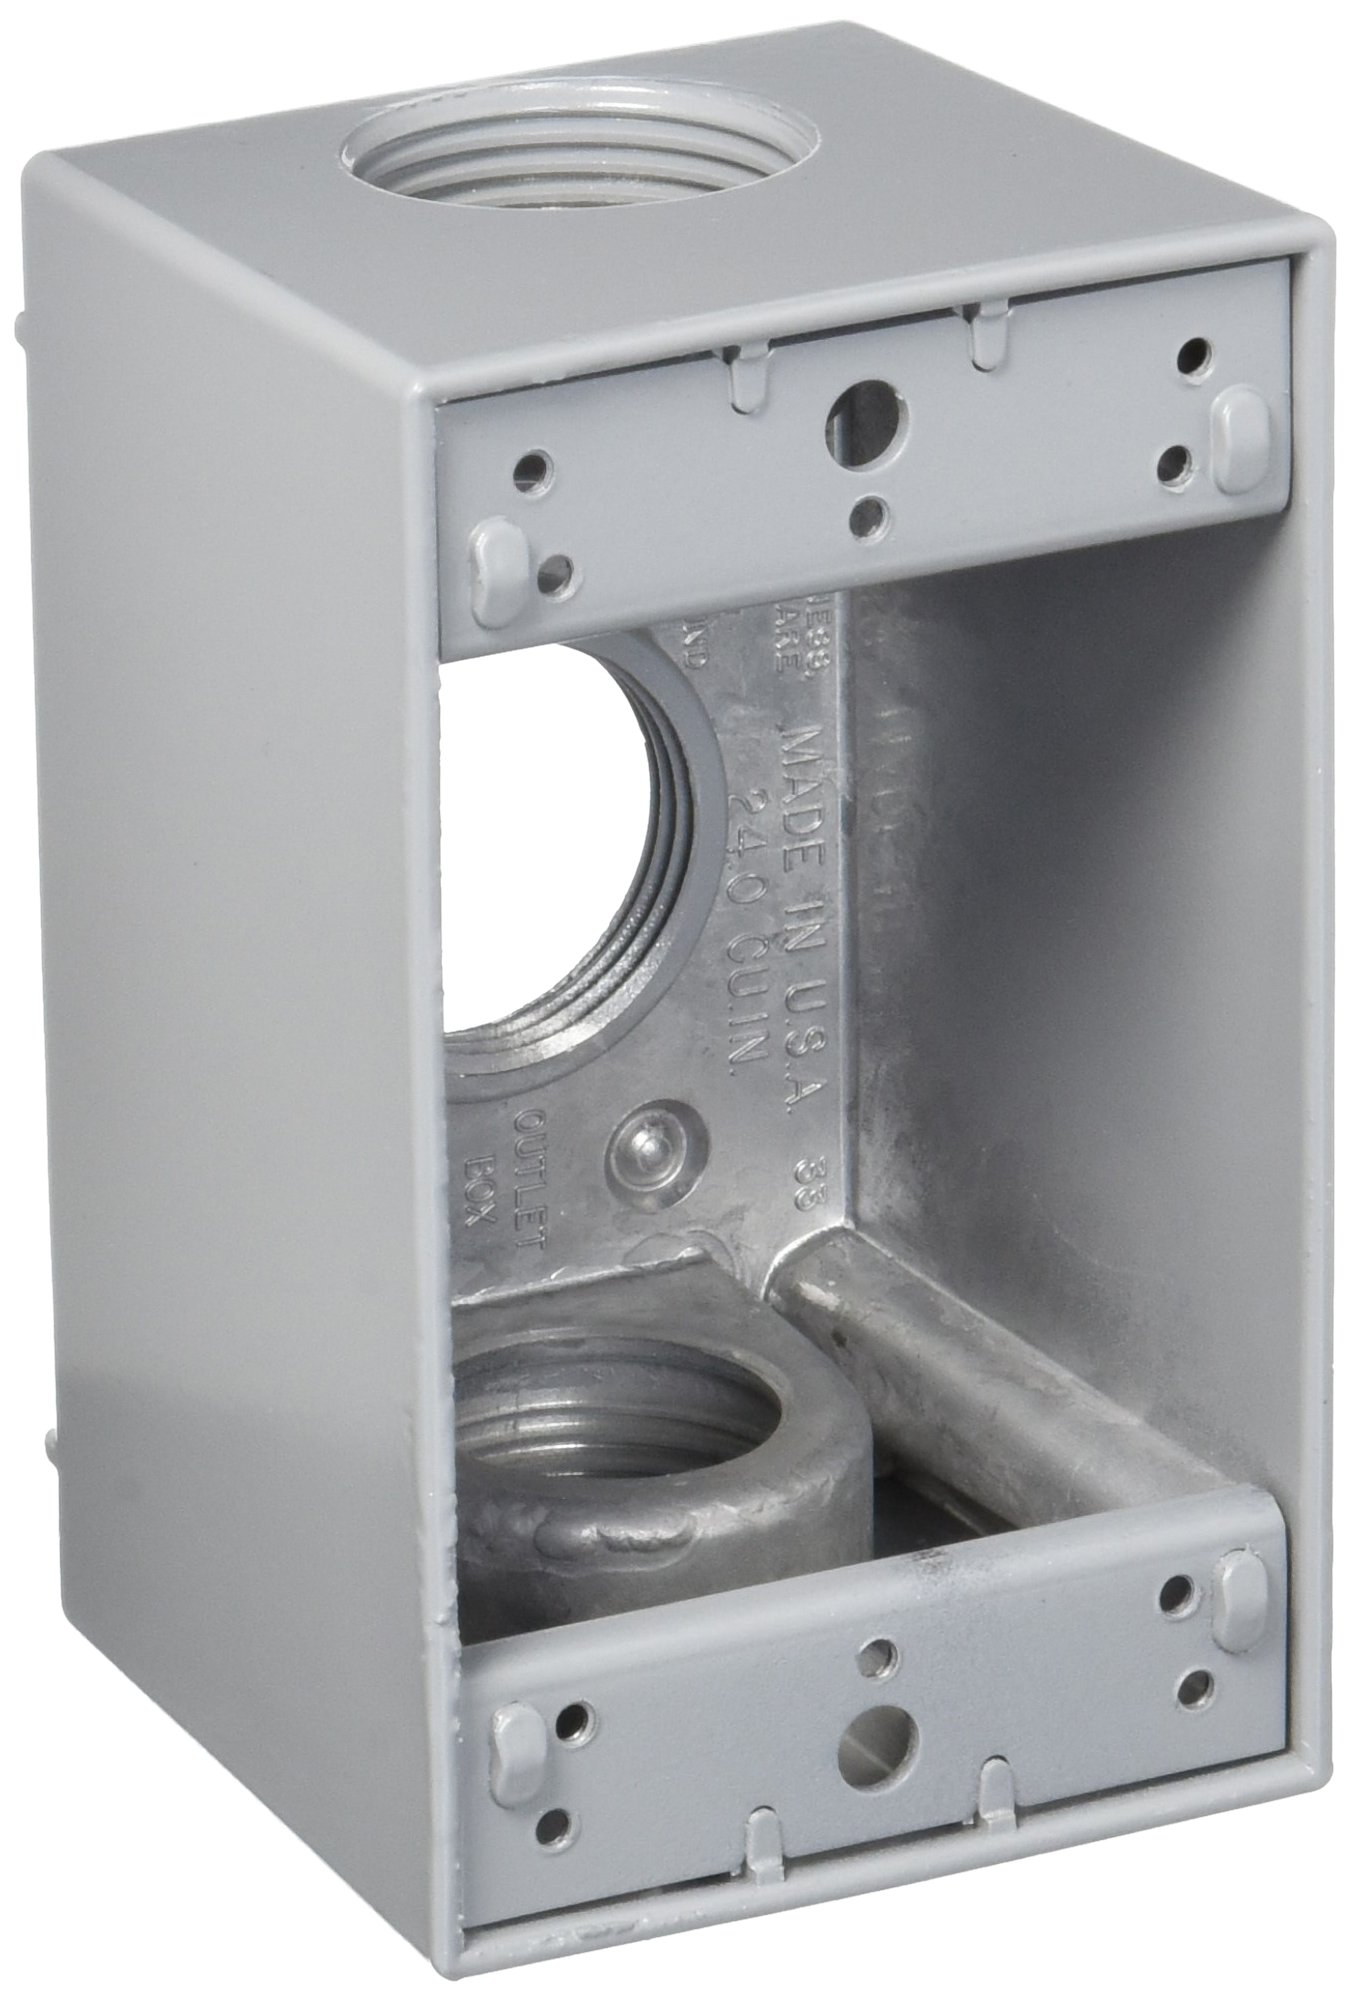 Made in USA Weatherproof Electrical Outlet Box (3) 1'' Holes - Gray